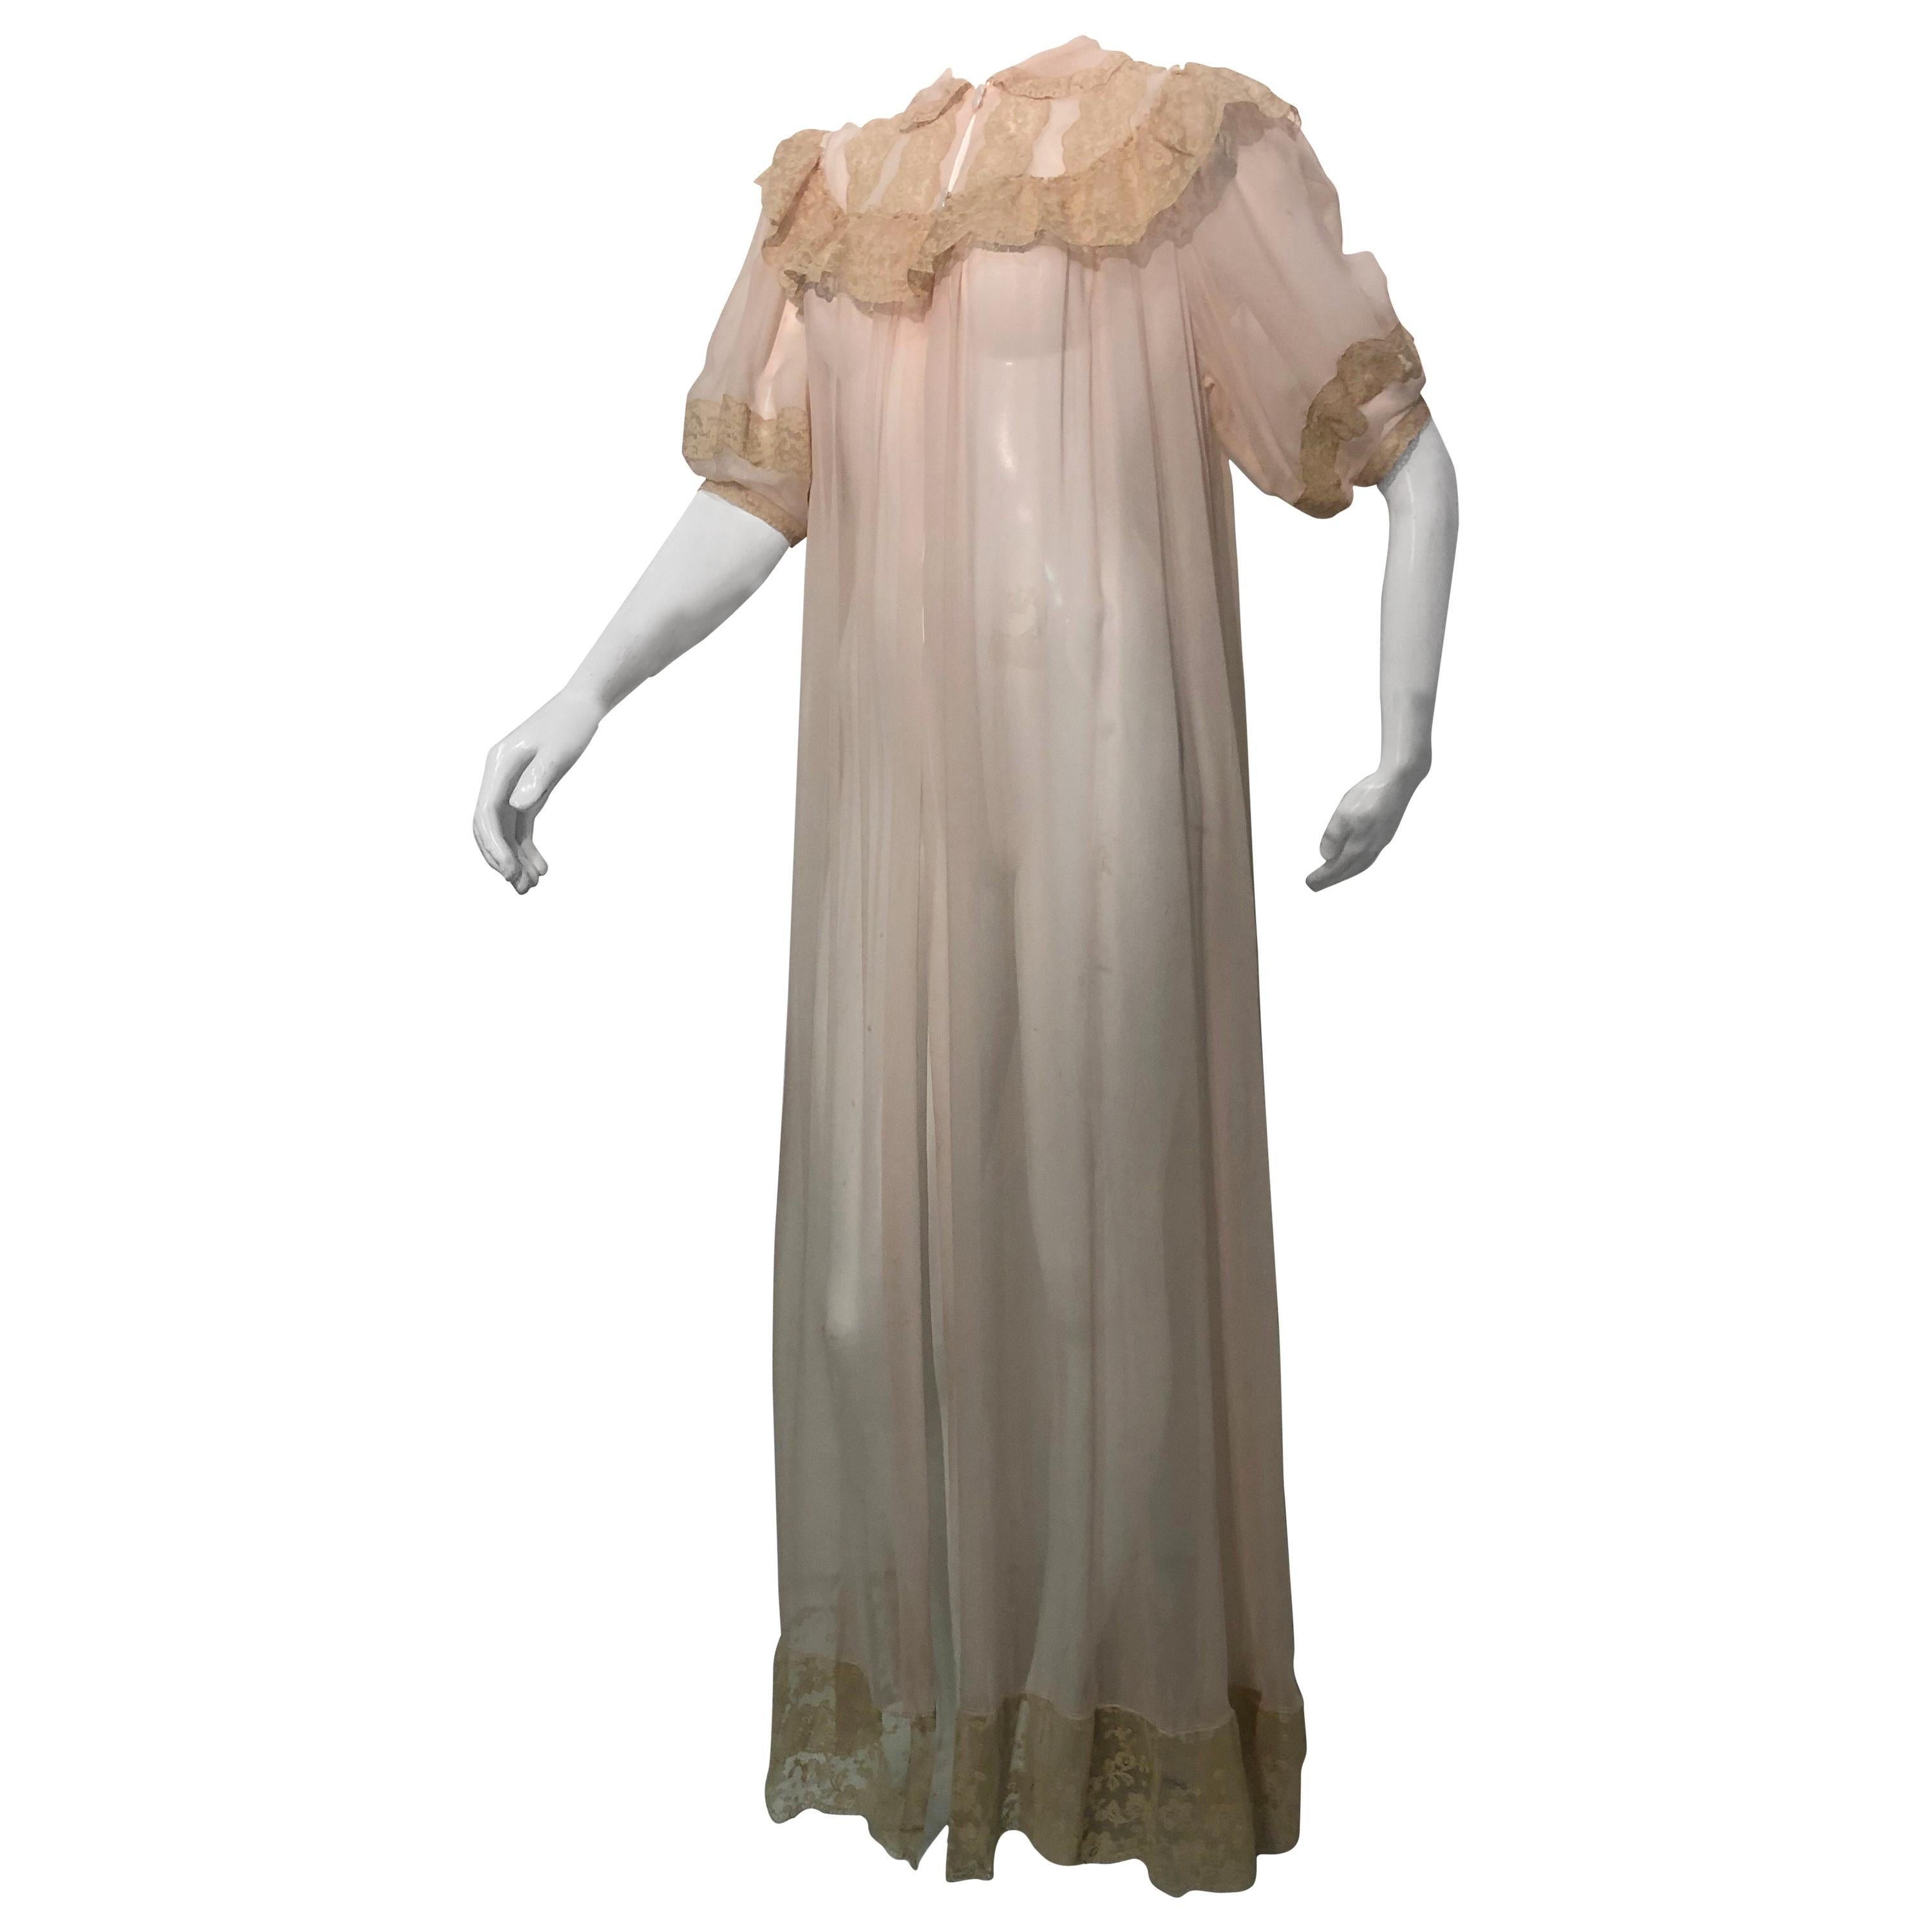 e29f4c1f3f7 Silk Negligees - 30 For Sale on 1stdibs